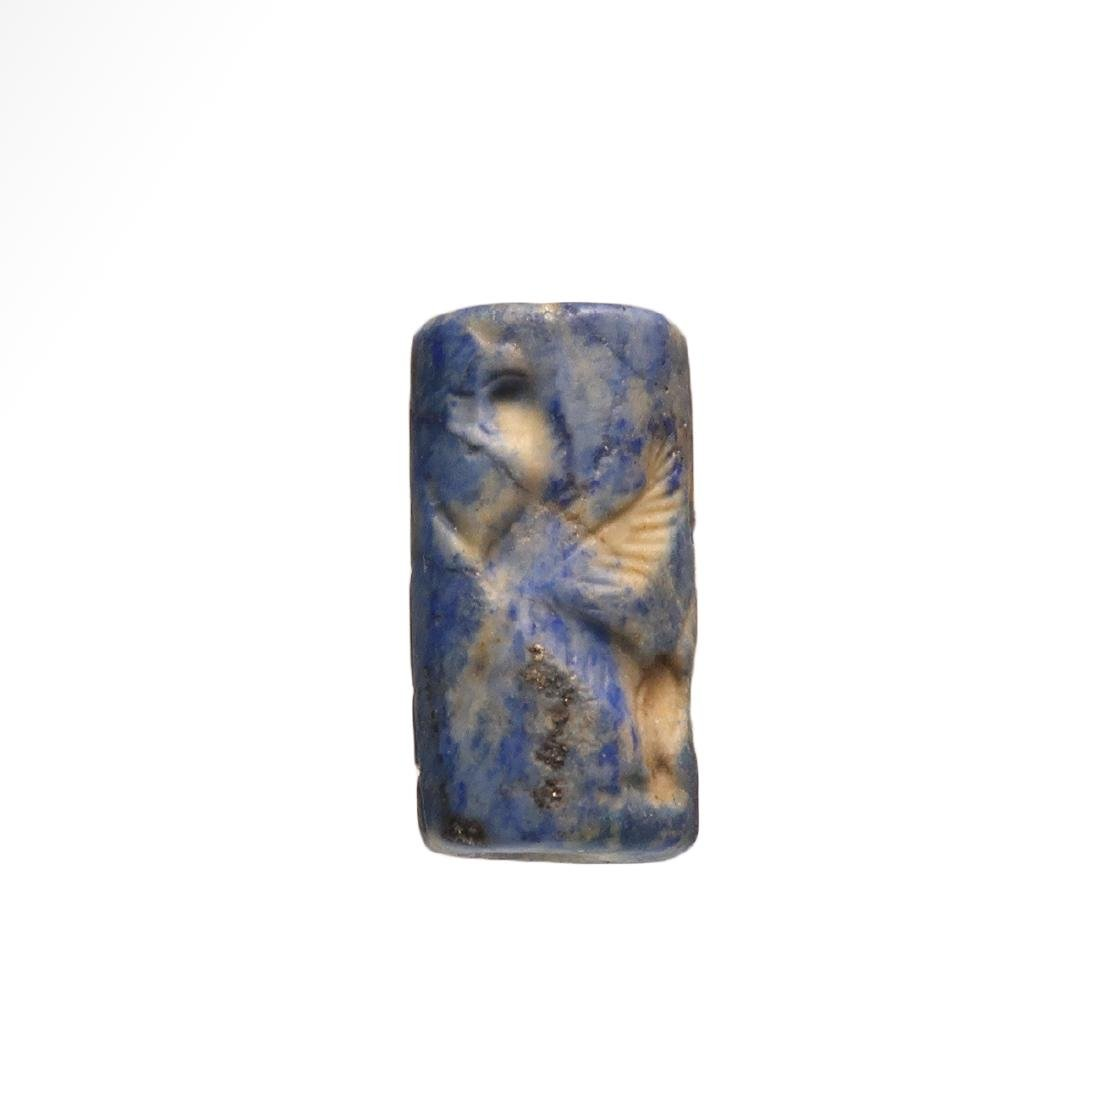 Assyrian Cylinder Seal, Deity and Winged Animals